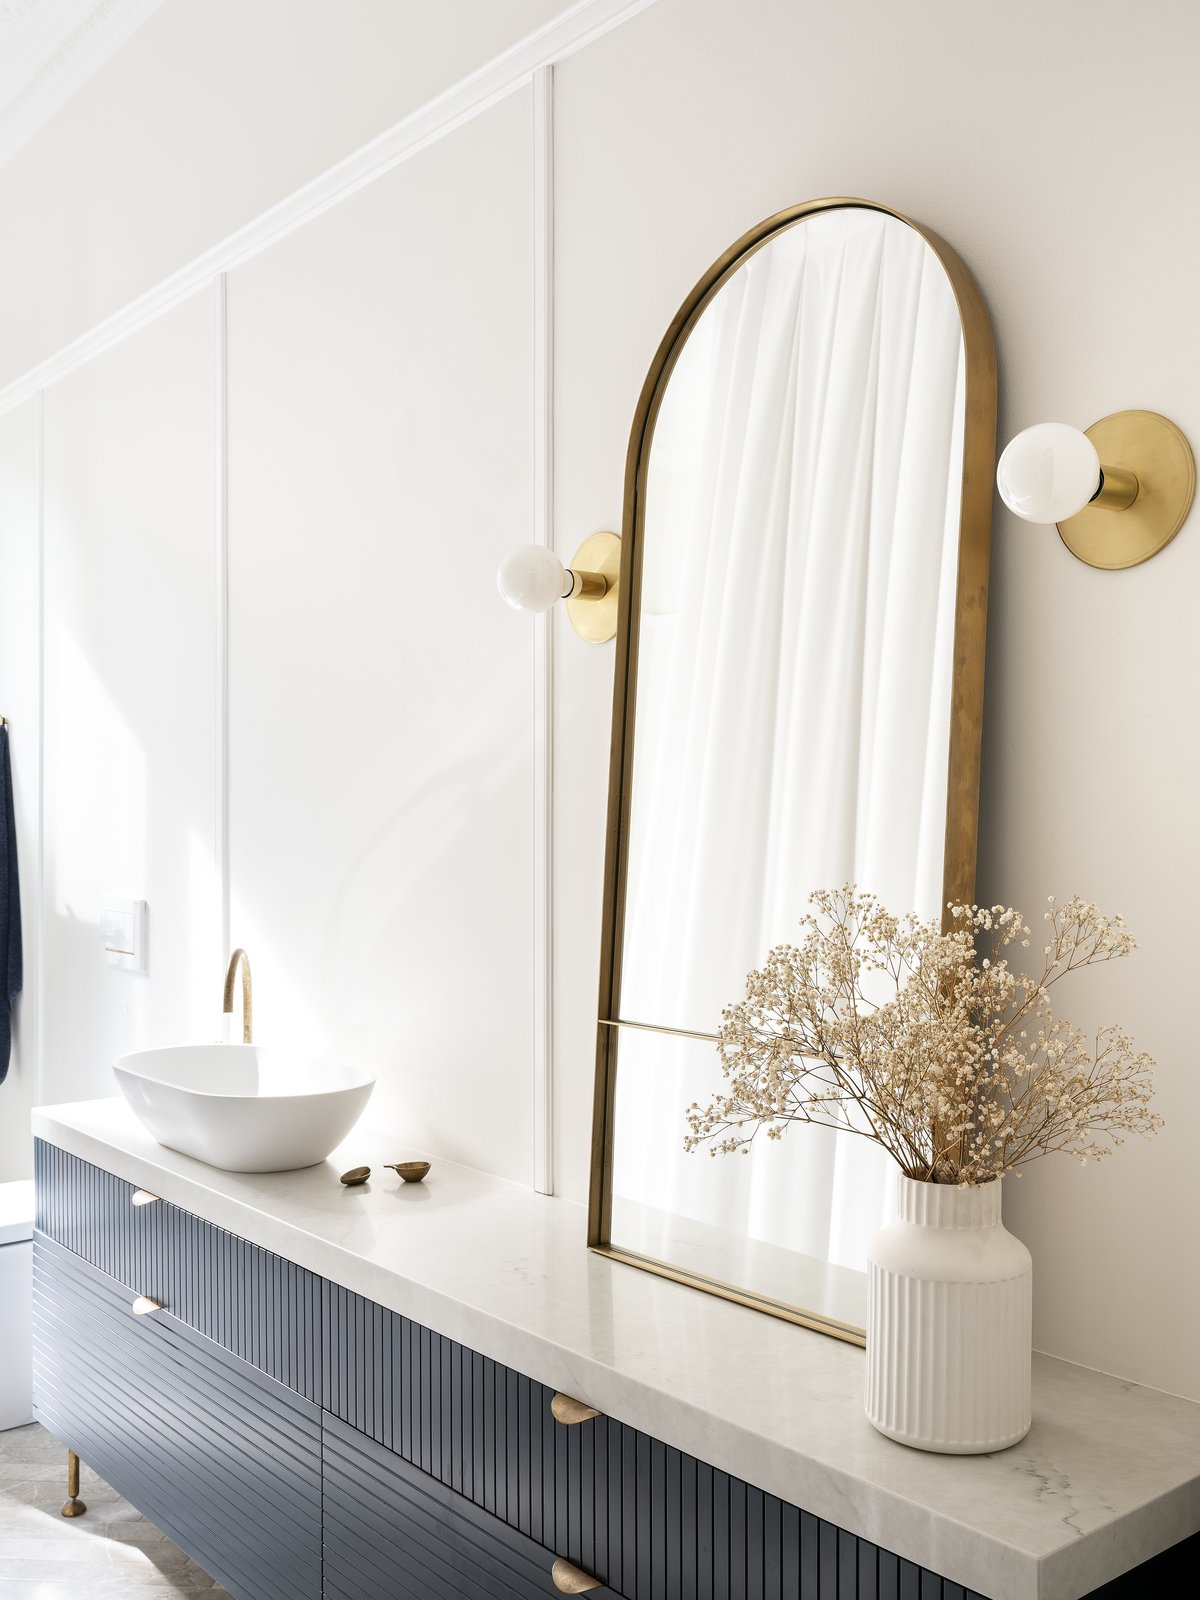 Bath, Marble, Accent, Wall, One Piece, and Vessel  Bath Vessel Accent One Piece Photos from Black Pivot Doors Frame Views of This Australian Home's Verdant Garden